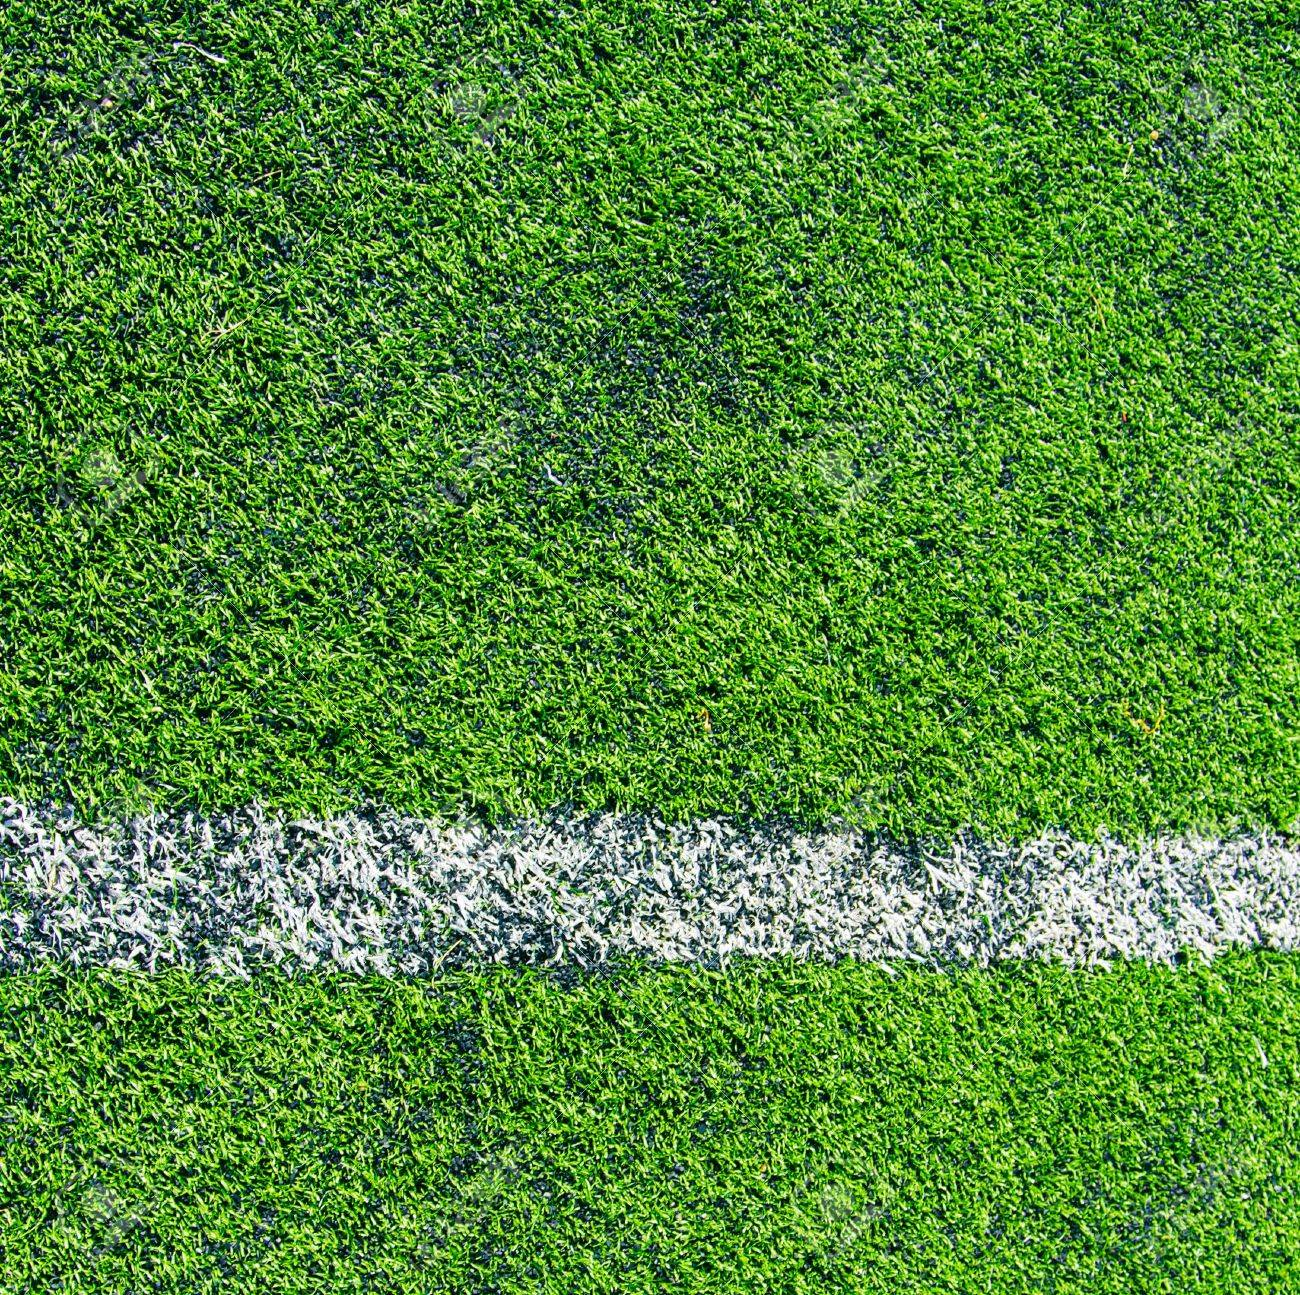 white lines in green grass field in the soccer field Stock Photo - 19484361